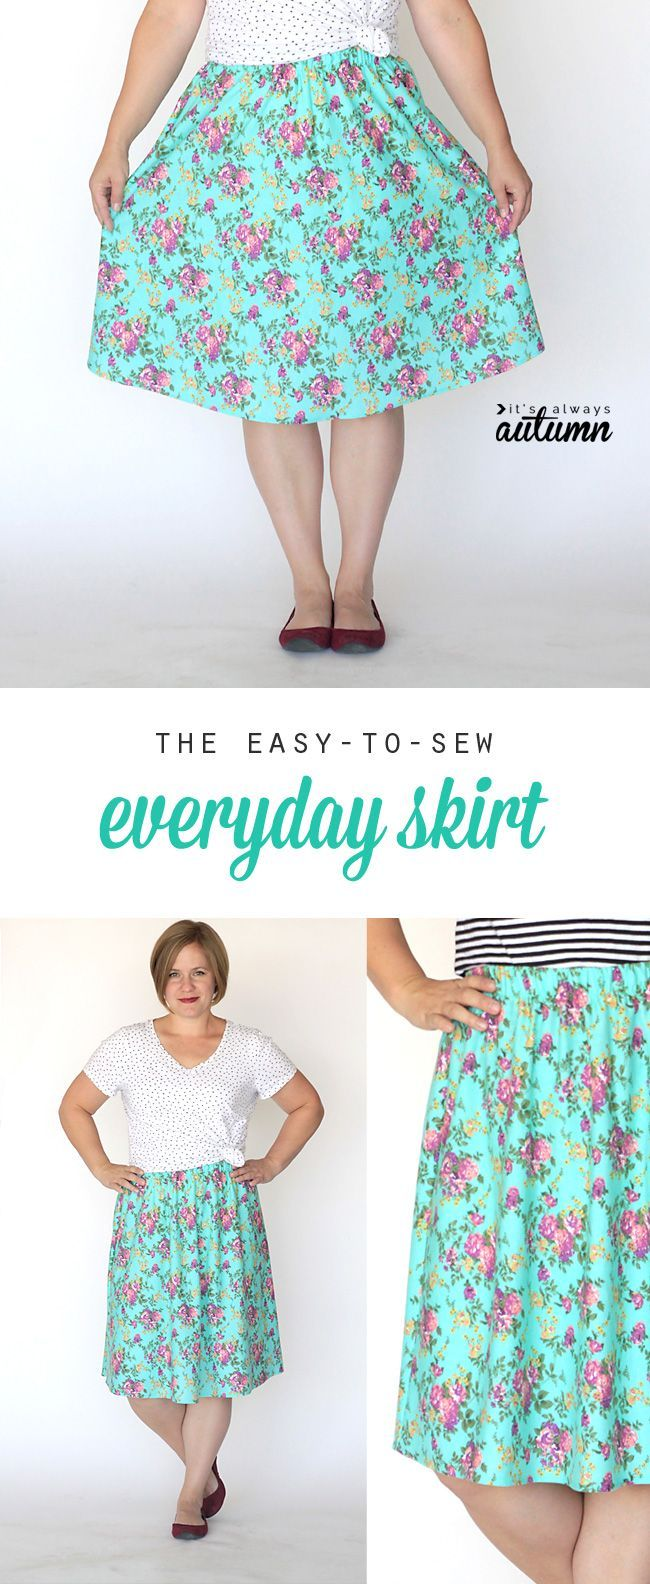 the everyday skirt simple sewing tutorial | DIY Fashion ...